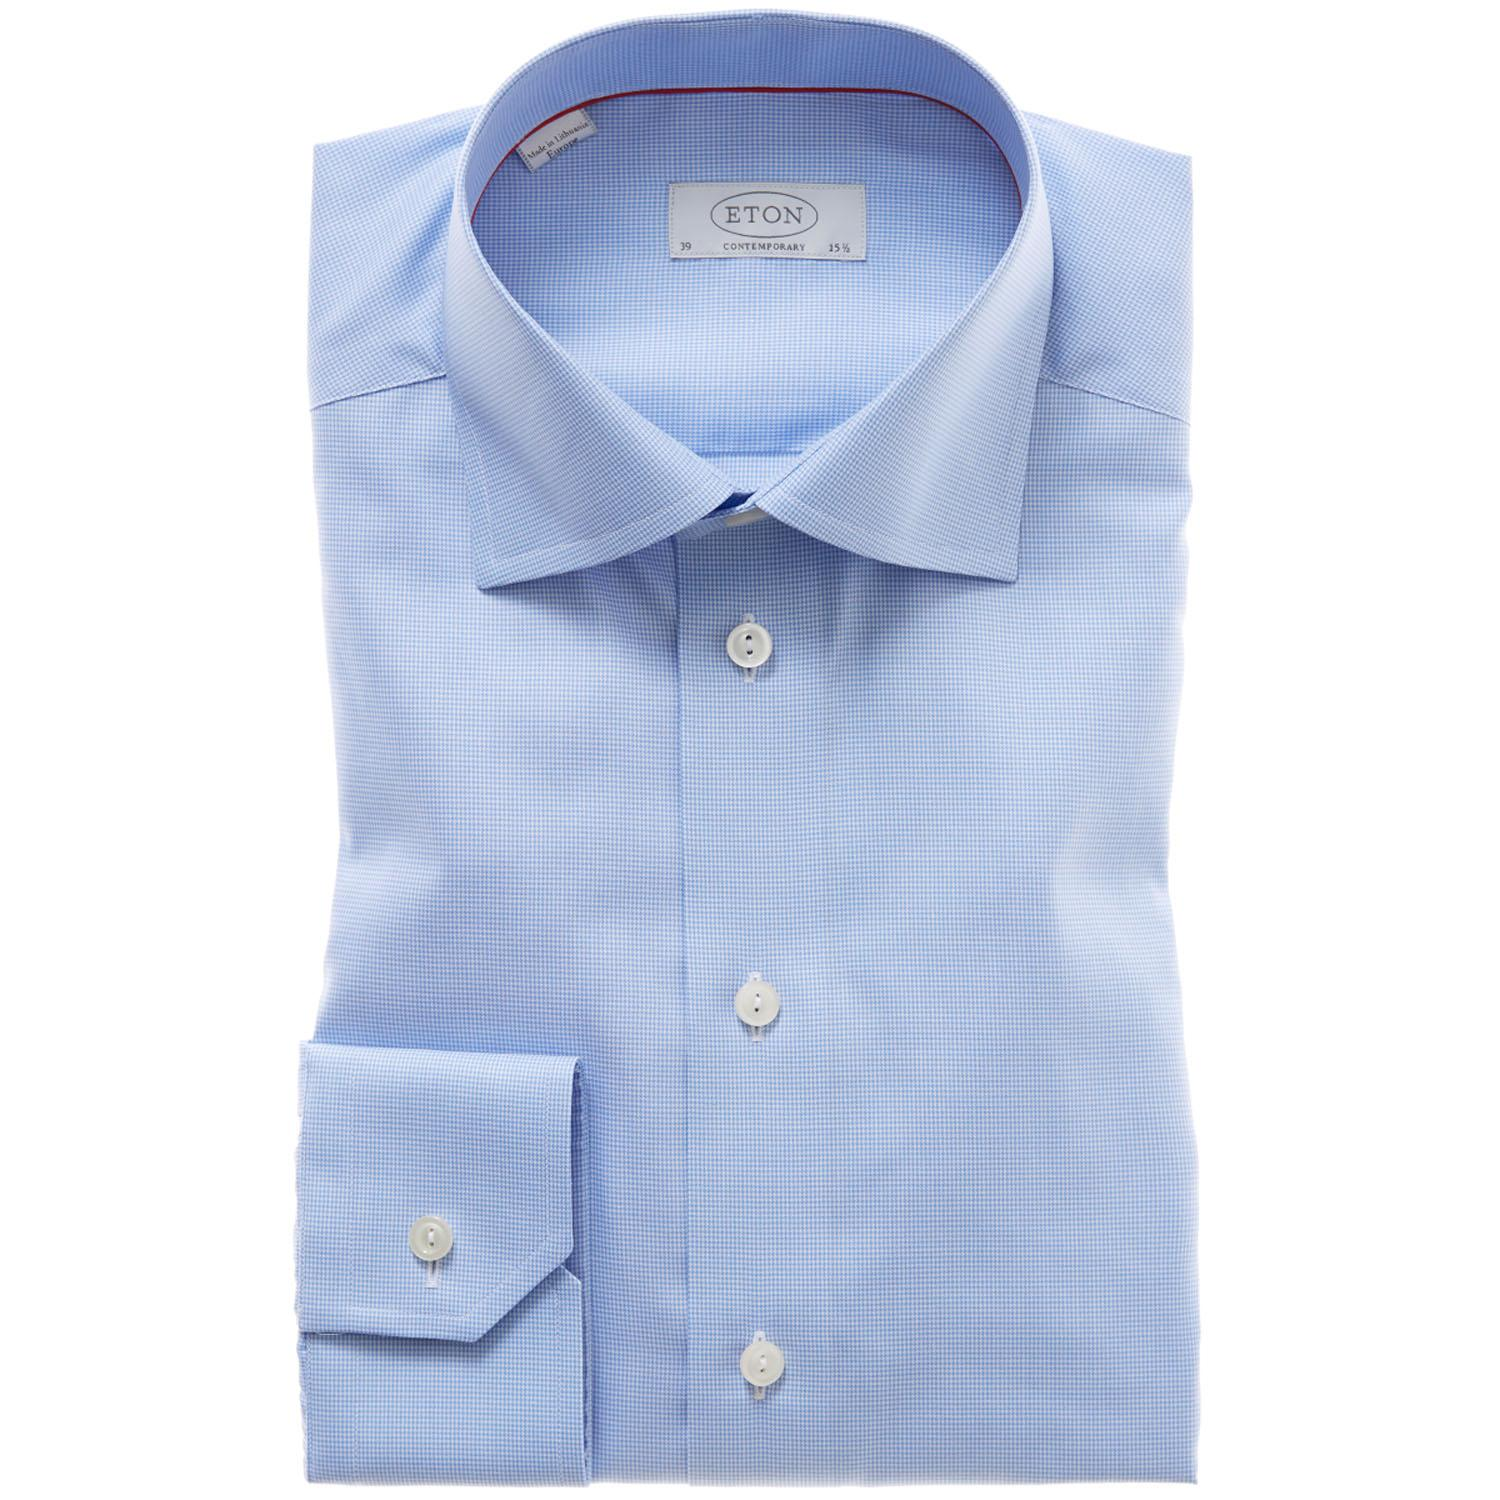 Eton of sweden wrinkle free check dress shirt contemporary for How do wrinkle free shirts work